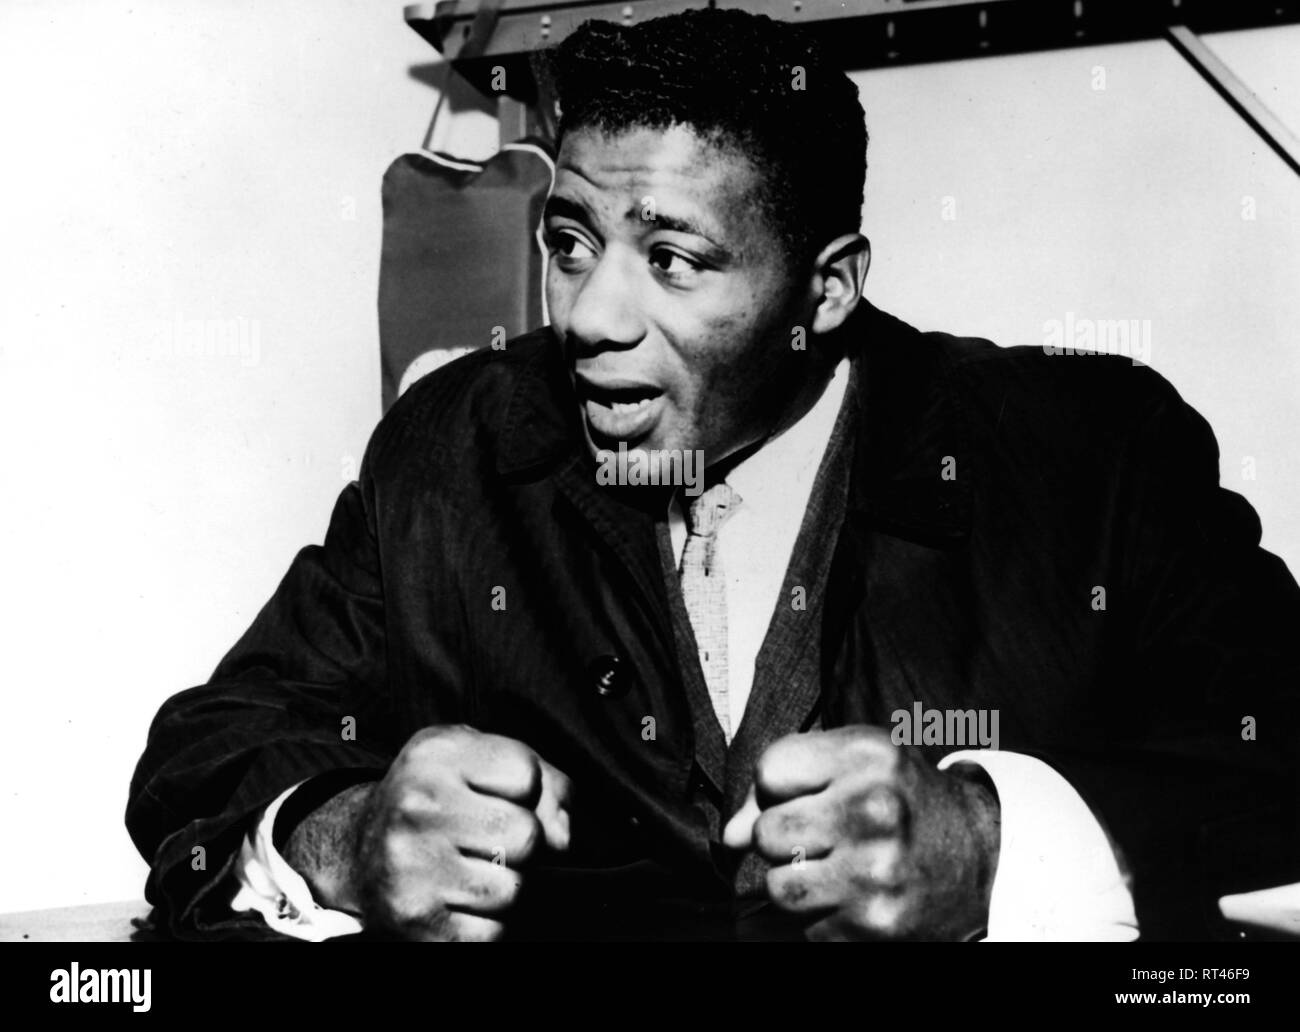 Patterson, Floyd, 4.1.1935 - 11.5.2006, American boxer, World Heavyweight Champion, at a press conference, New York City, 5.4.1962, Additional-Rights-Clearance-Info-Not-Available - Stock Image